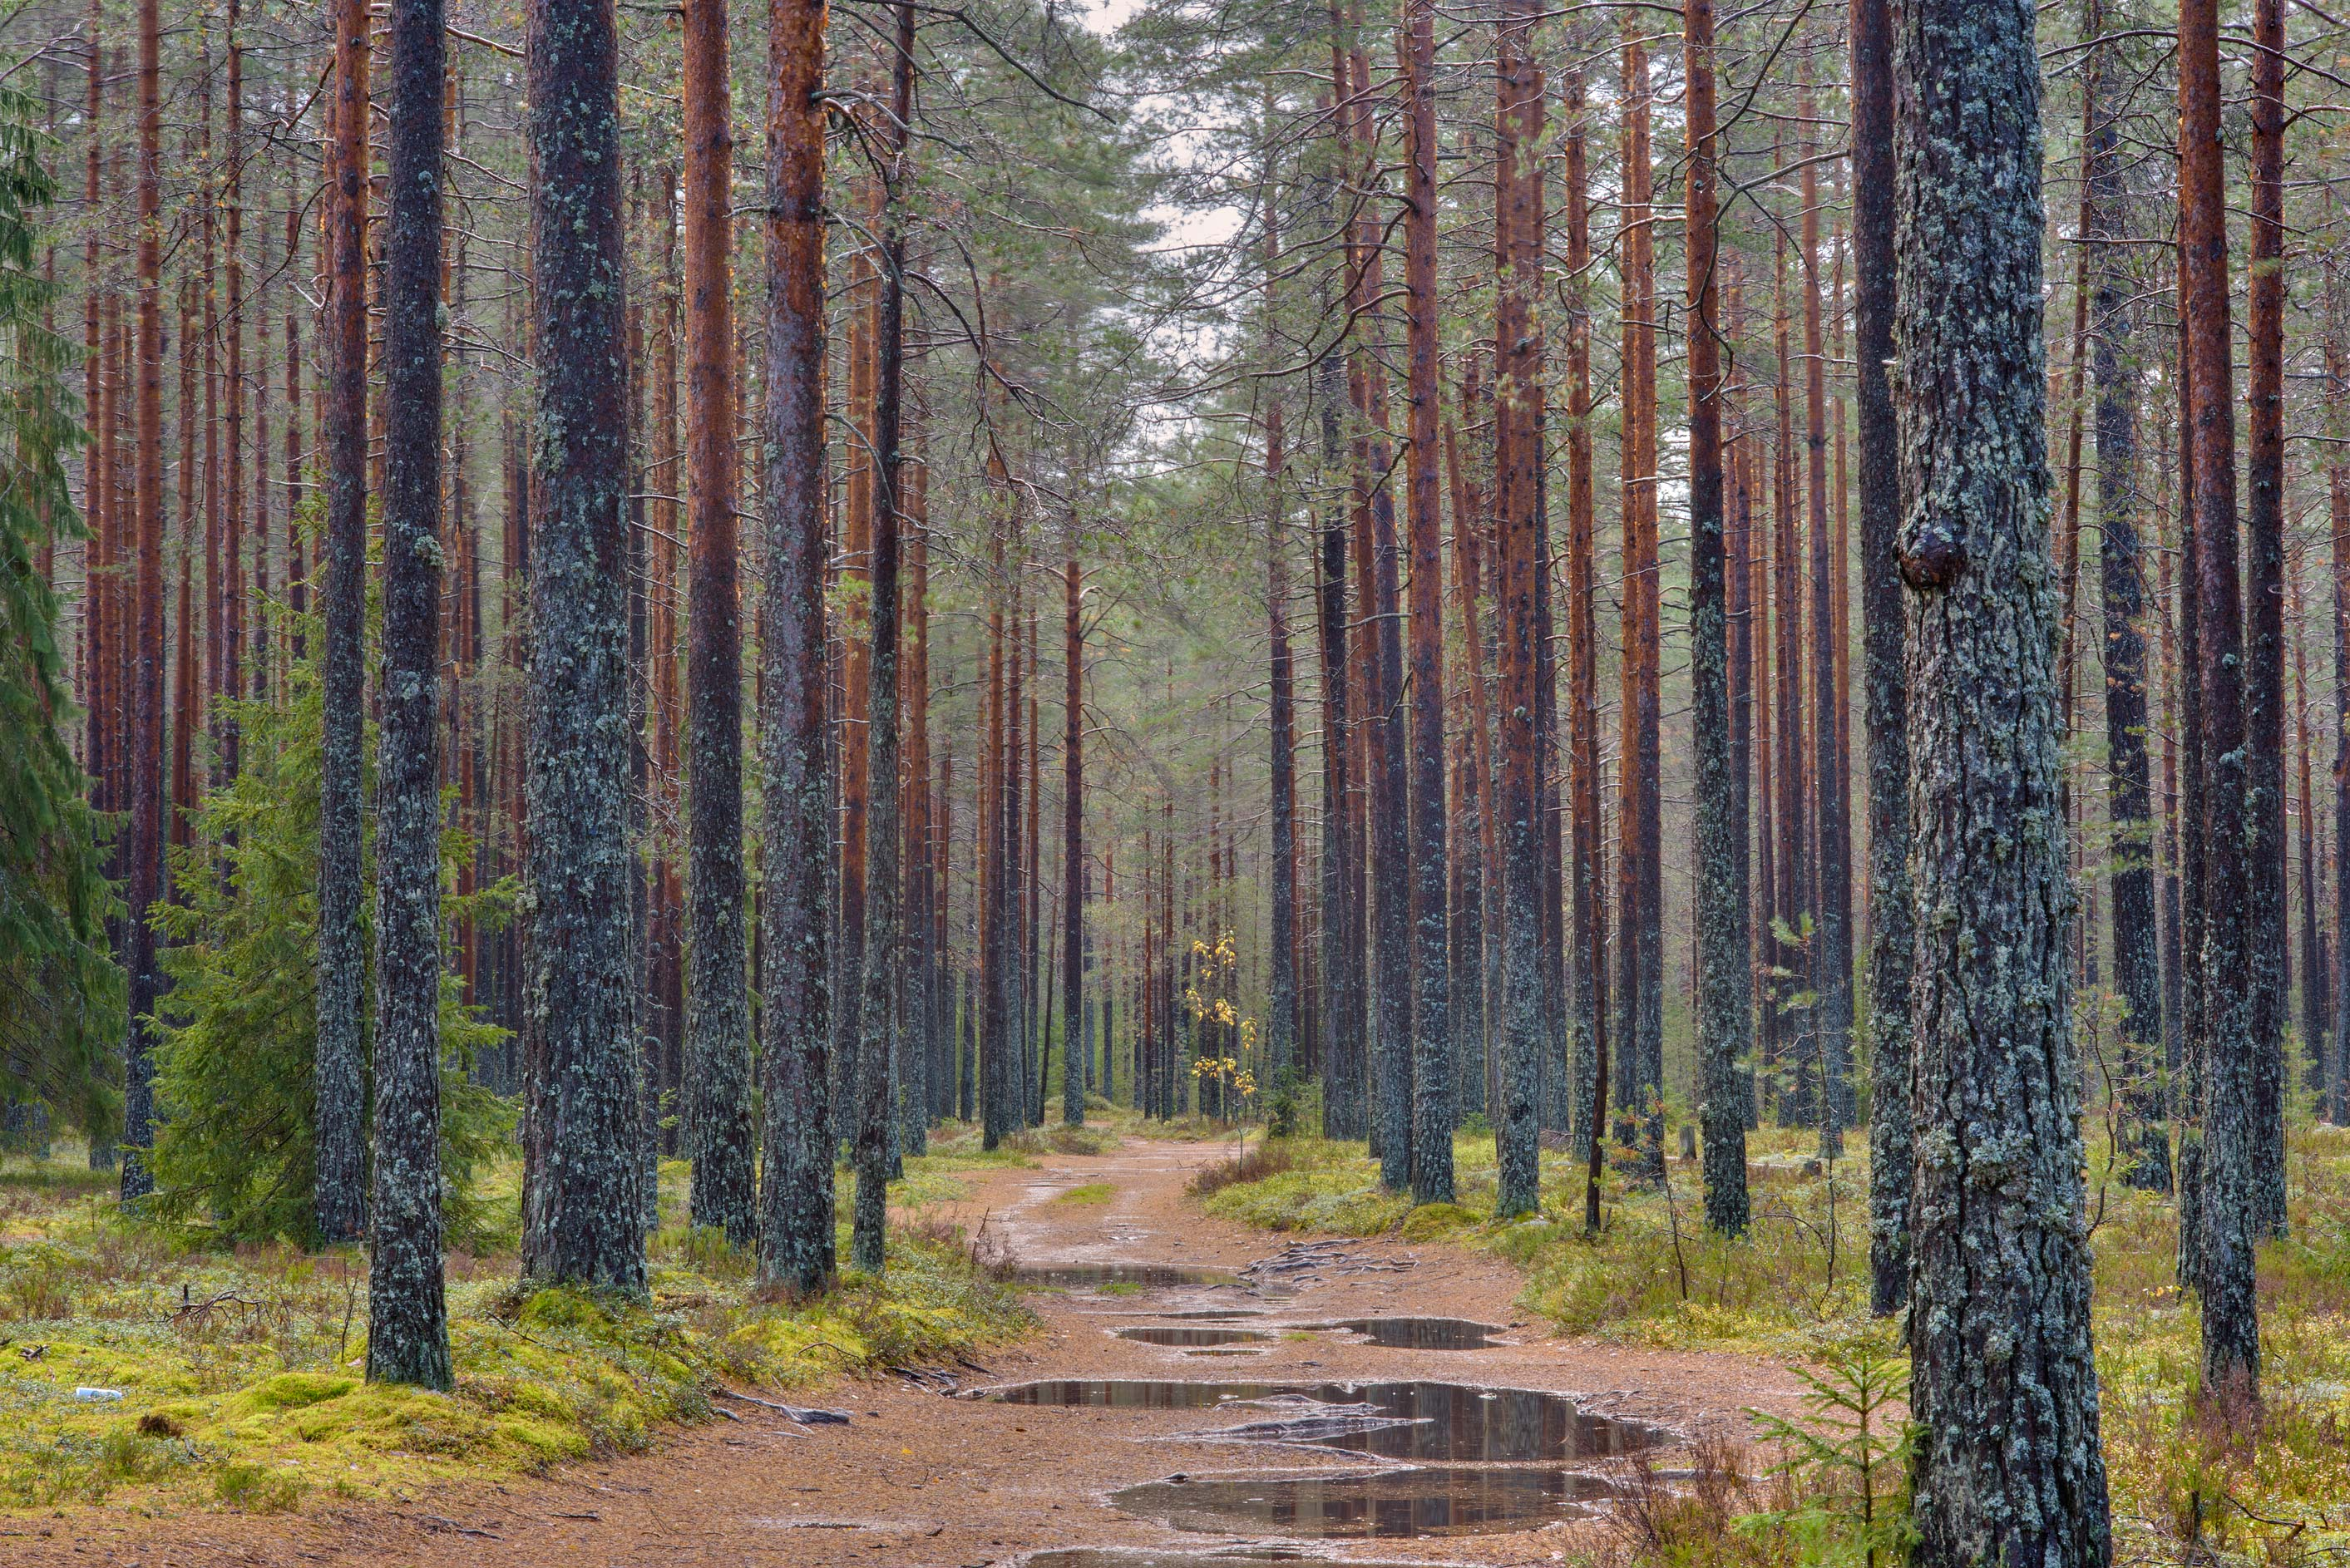 Pine forest at rain near Pervomayskoe, Vyborg Region. Russia